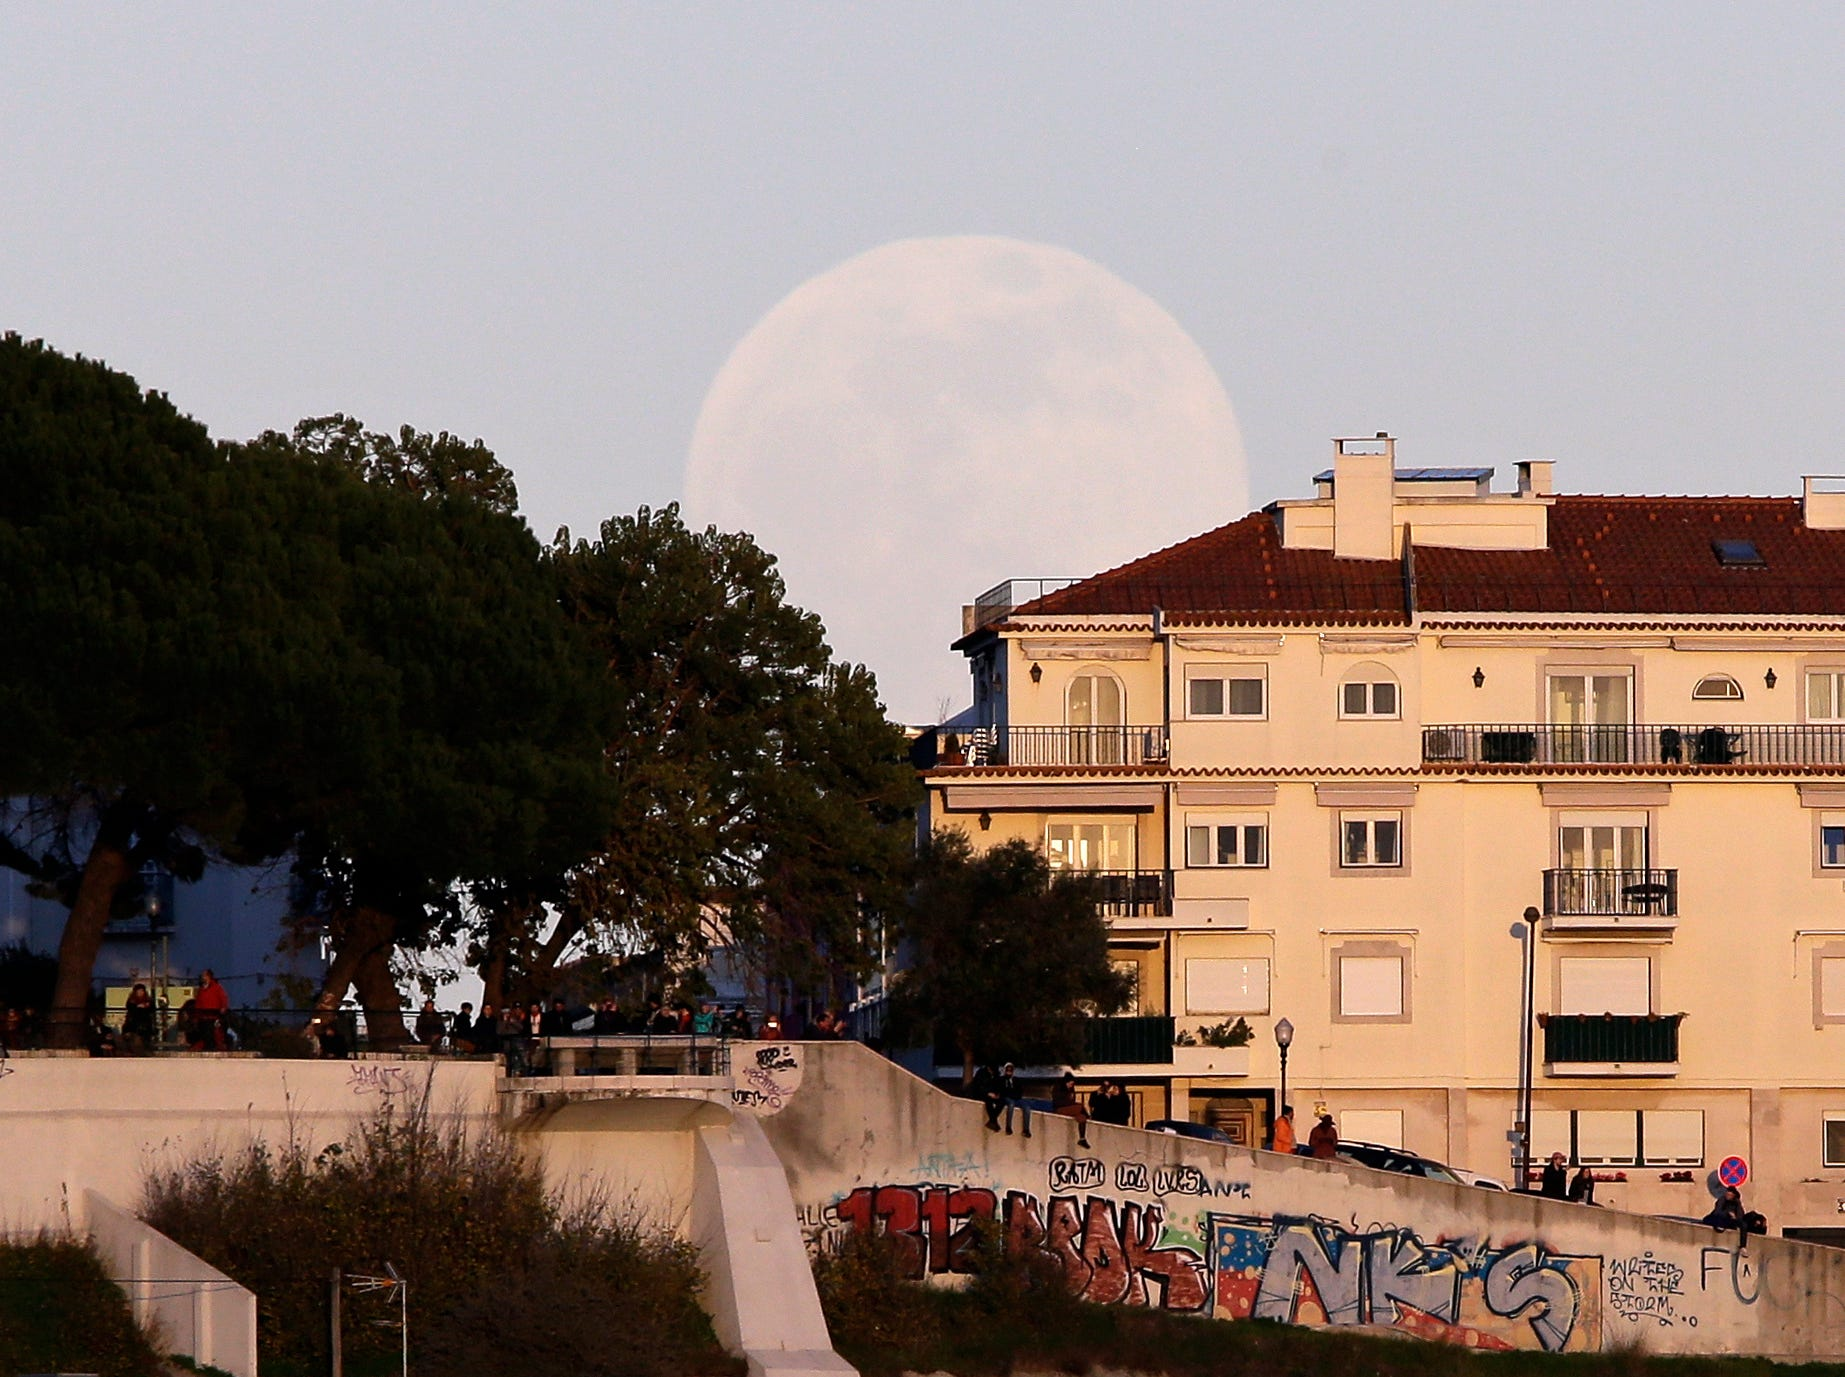 People watch the sunset from the top of a hill as the full moon rises behind them Sunday, Jan. 20 2019, in Lisbon. Sunday night, the Earth will slide directly between the moon and the sun, creating a total lunar eclipse. It will also be the year's first supermoon, when a full moon appears a little bigger and brighter thanks to its slightly closer position. (AP Photo/Armando Franca)